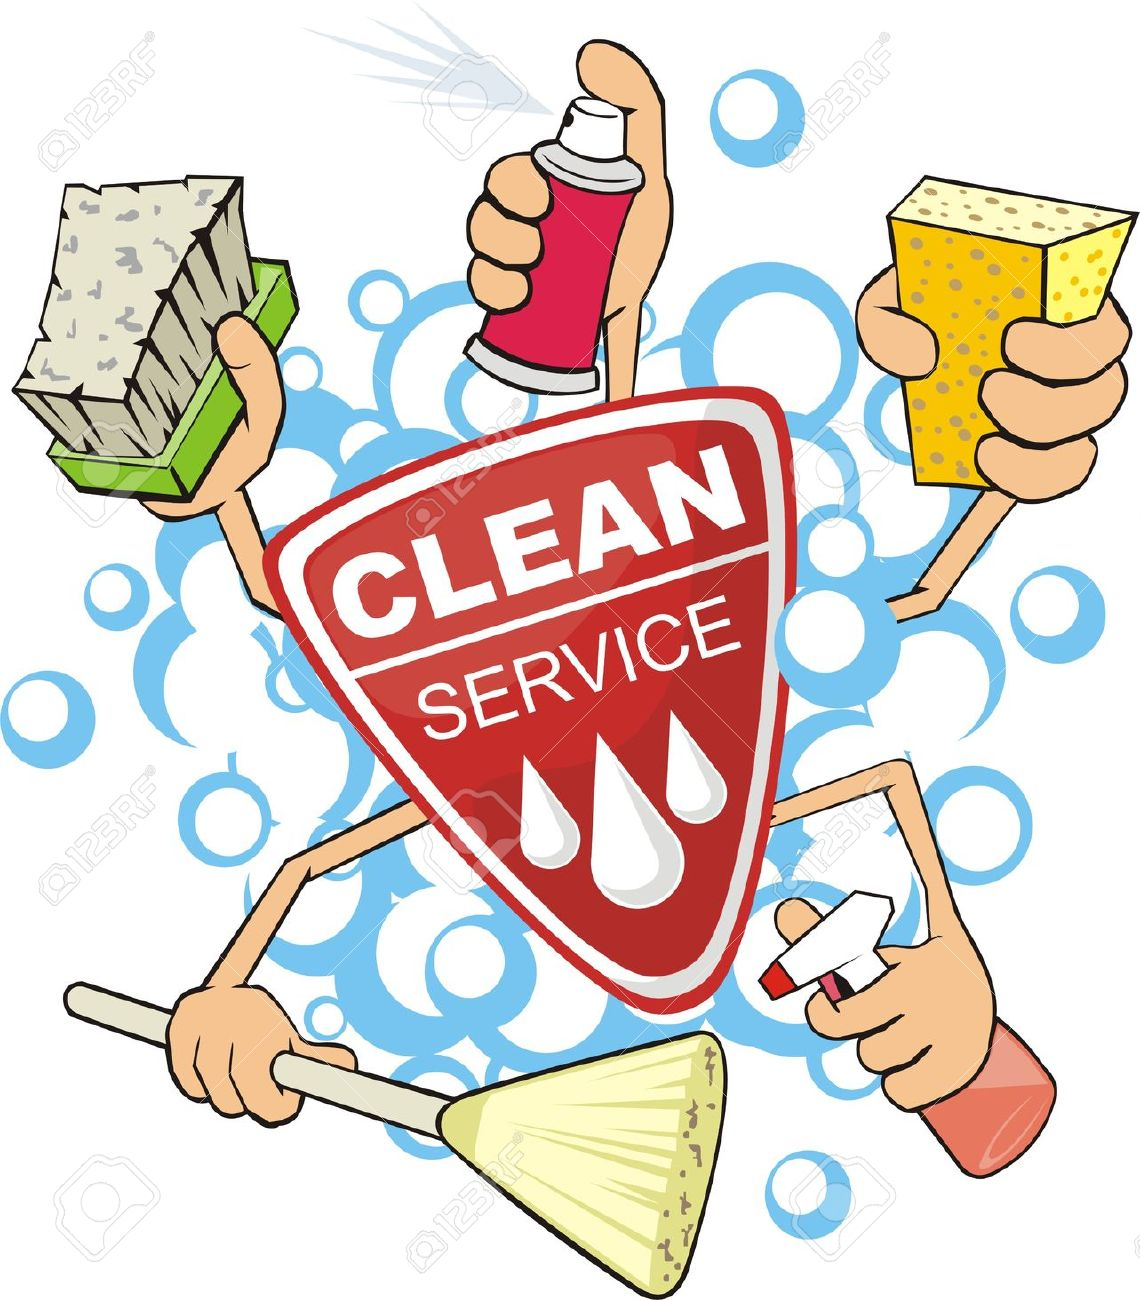 Cleaners clipart images.